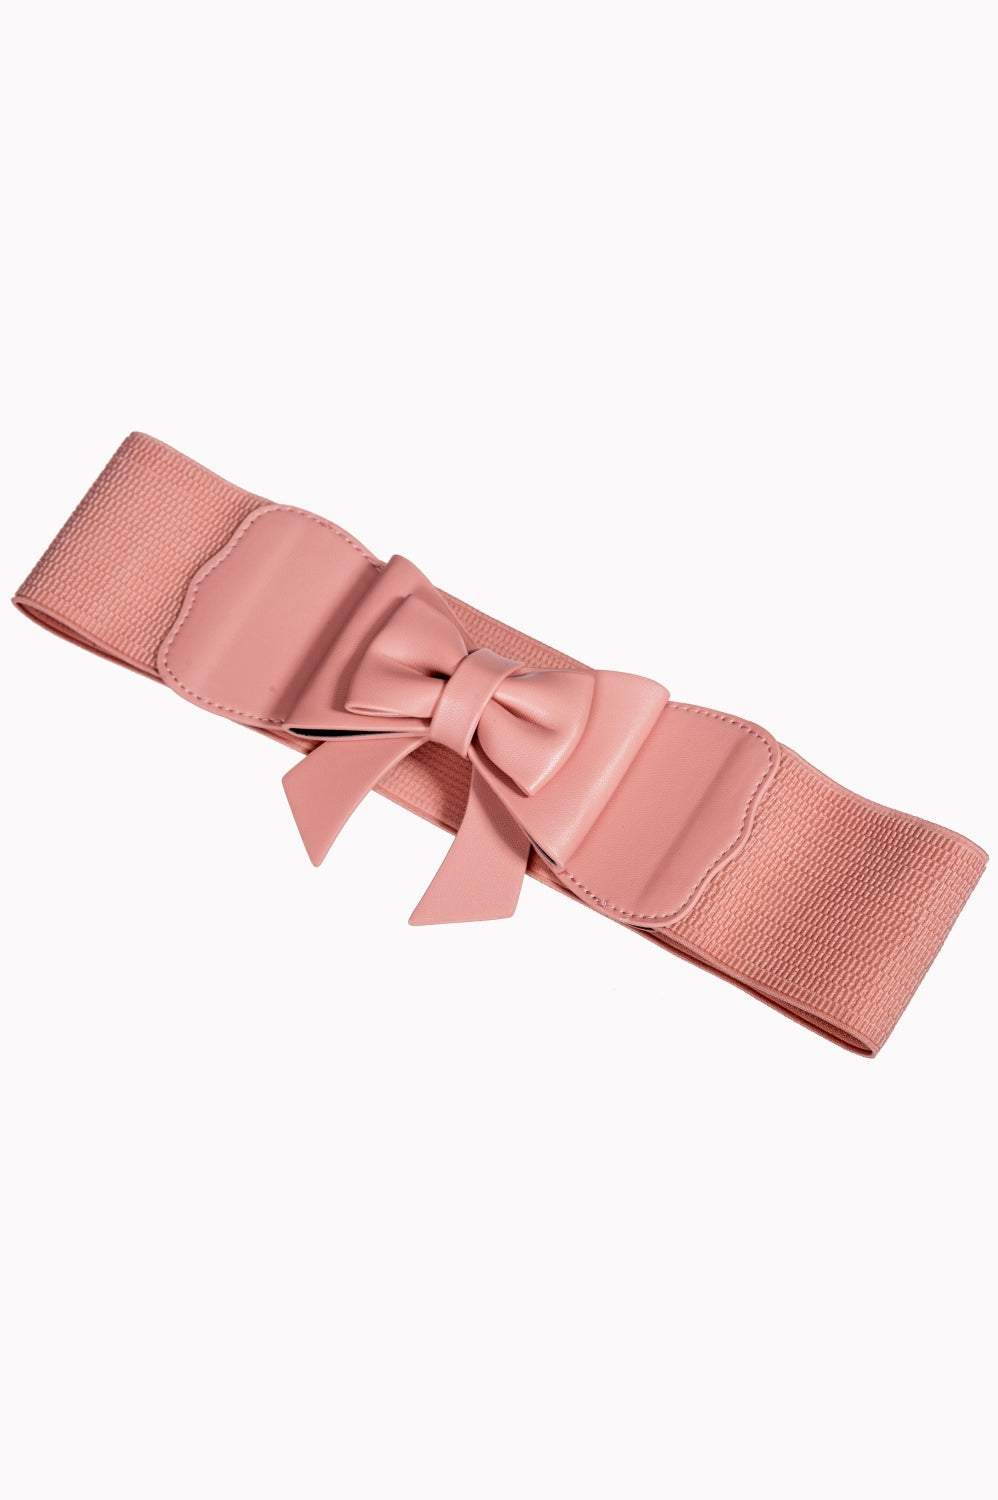 Dancing Days 50s Style Retro Elasticated Belt With Bow In Coral Pink; Dancing Days; 50s Retro Style; Elasticated Belt; Coral Pink Bow Design; Pink